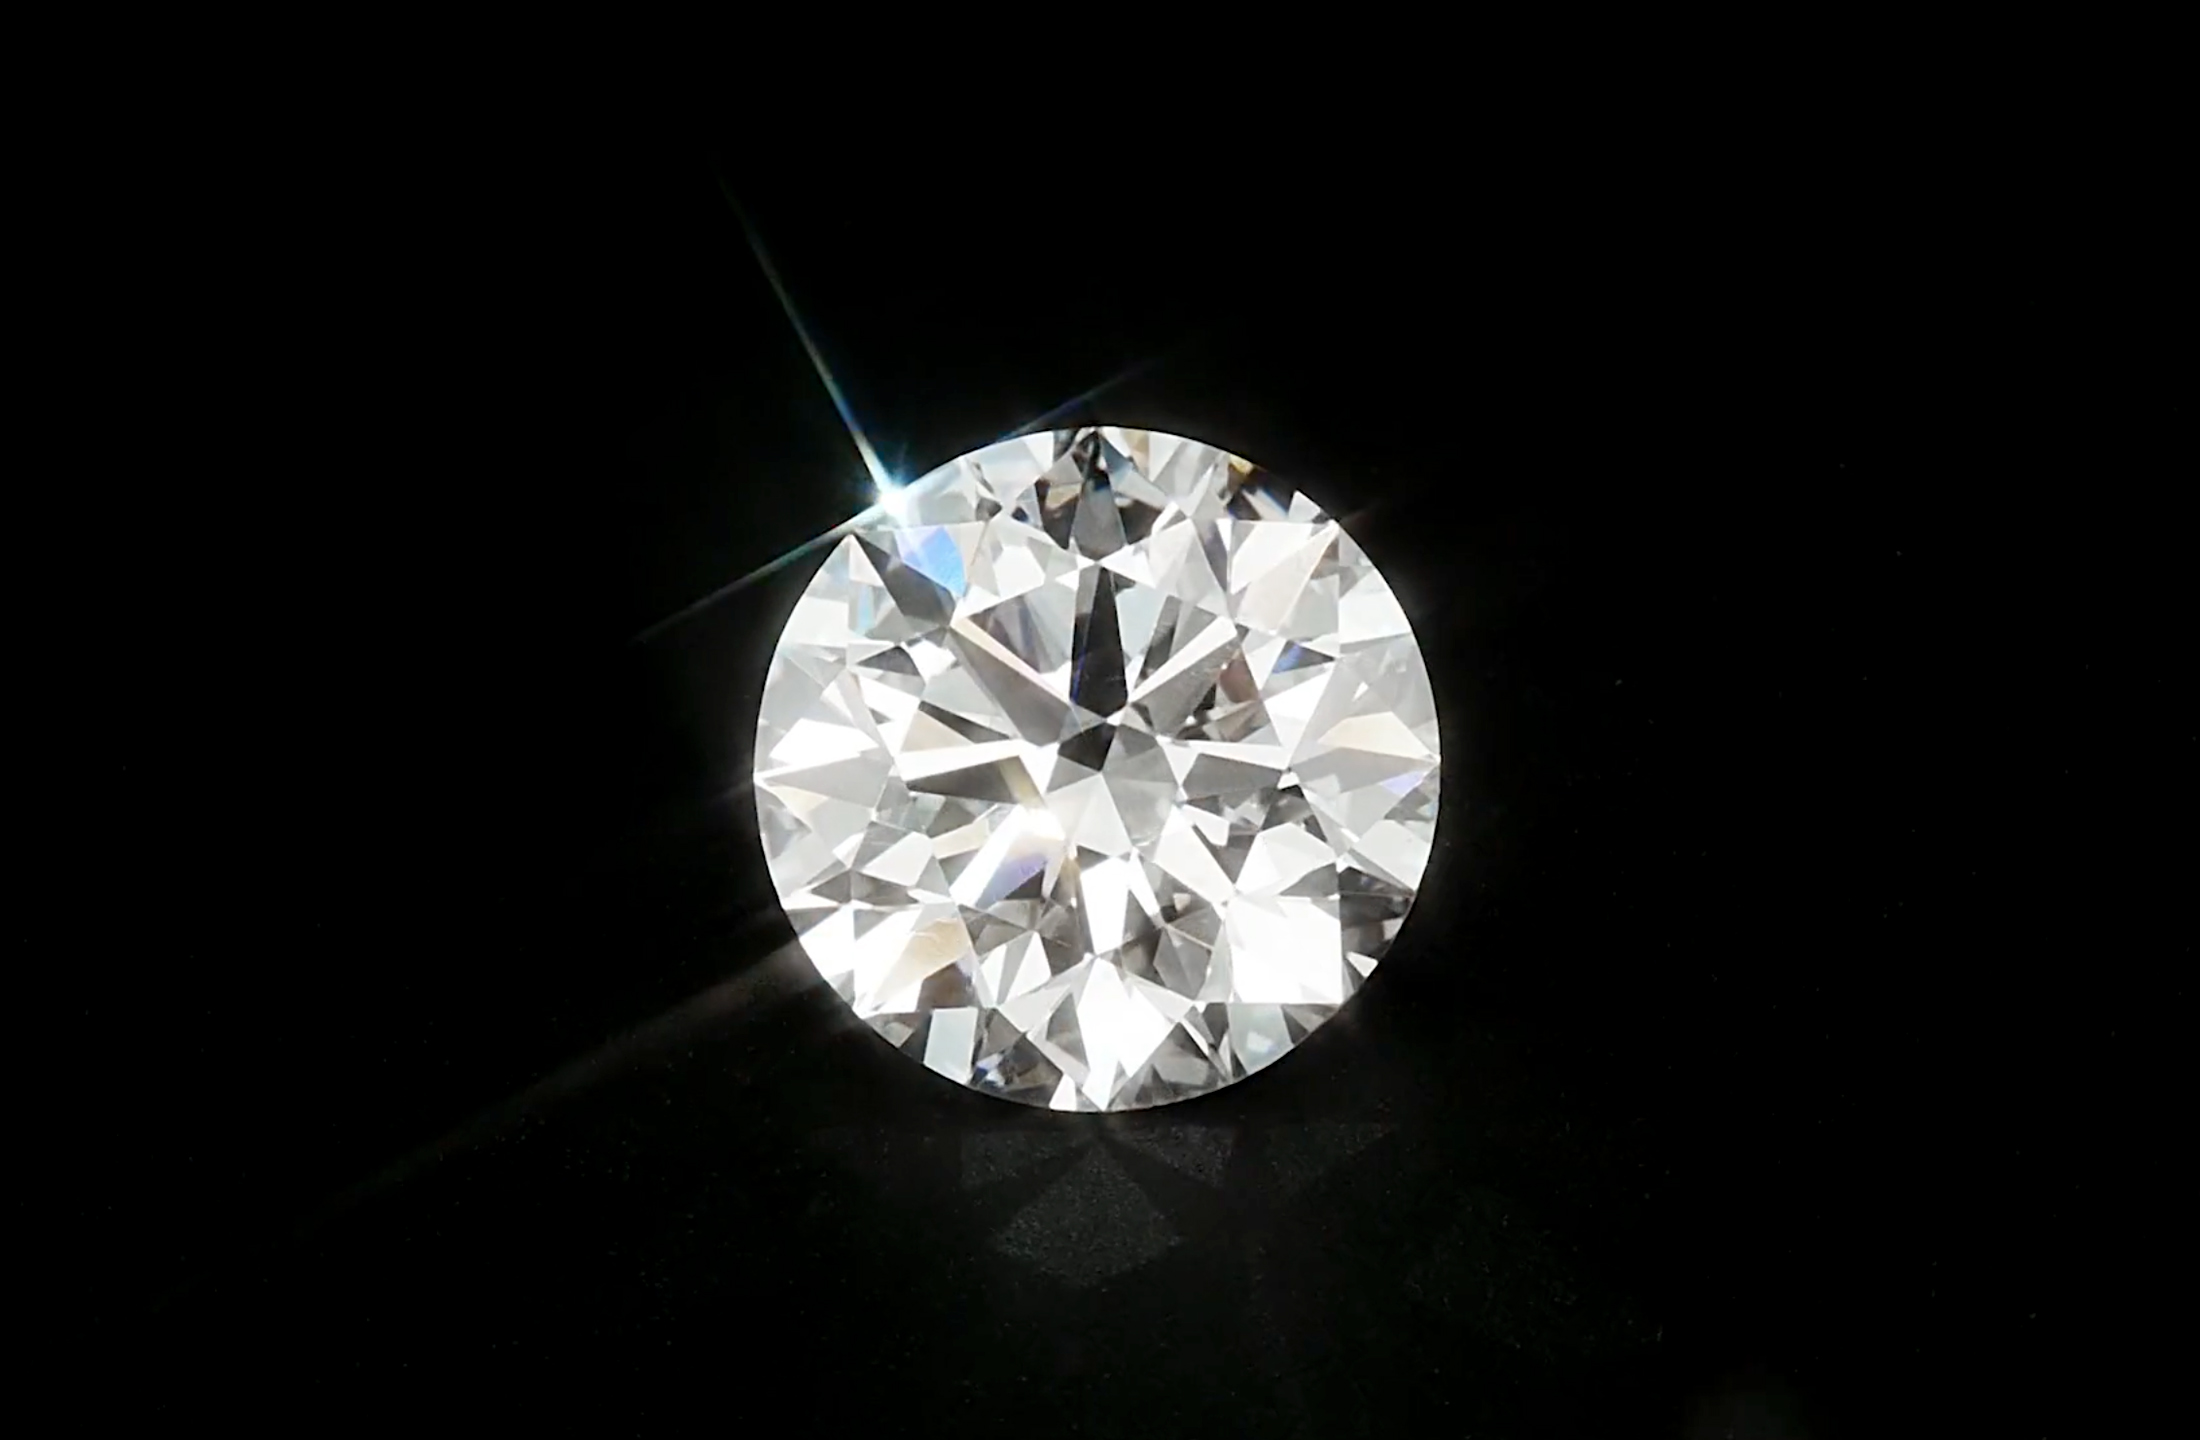 sotheby iia flawless carat come style rarest diamond market d sothebys s unveils type to ever colour white diamonds